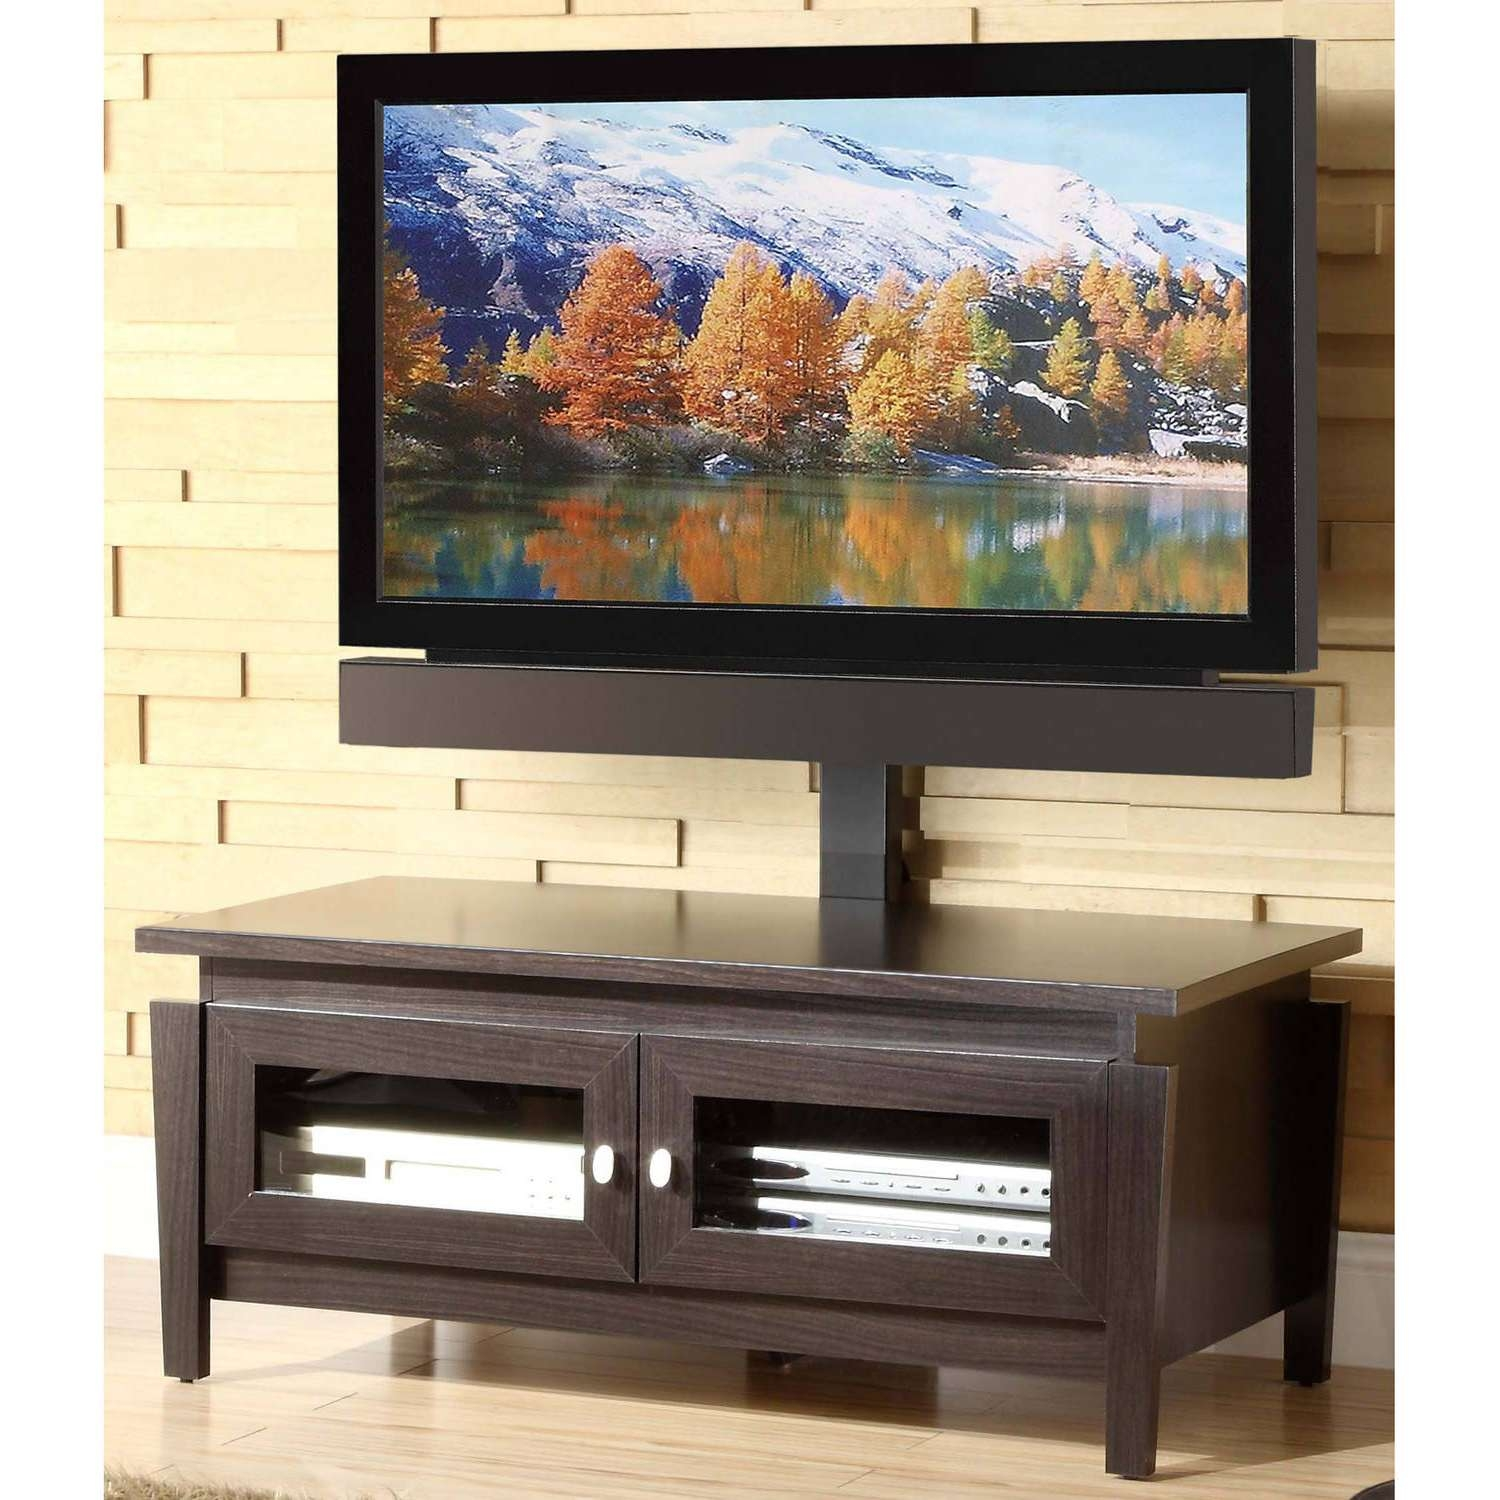 Tv Stand : Da1De92Aaf0E 1 Marvelous Tv Stand With Pictures Design Intended For Cordoba Tv Stands (View 12 of 15)